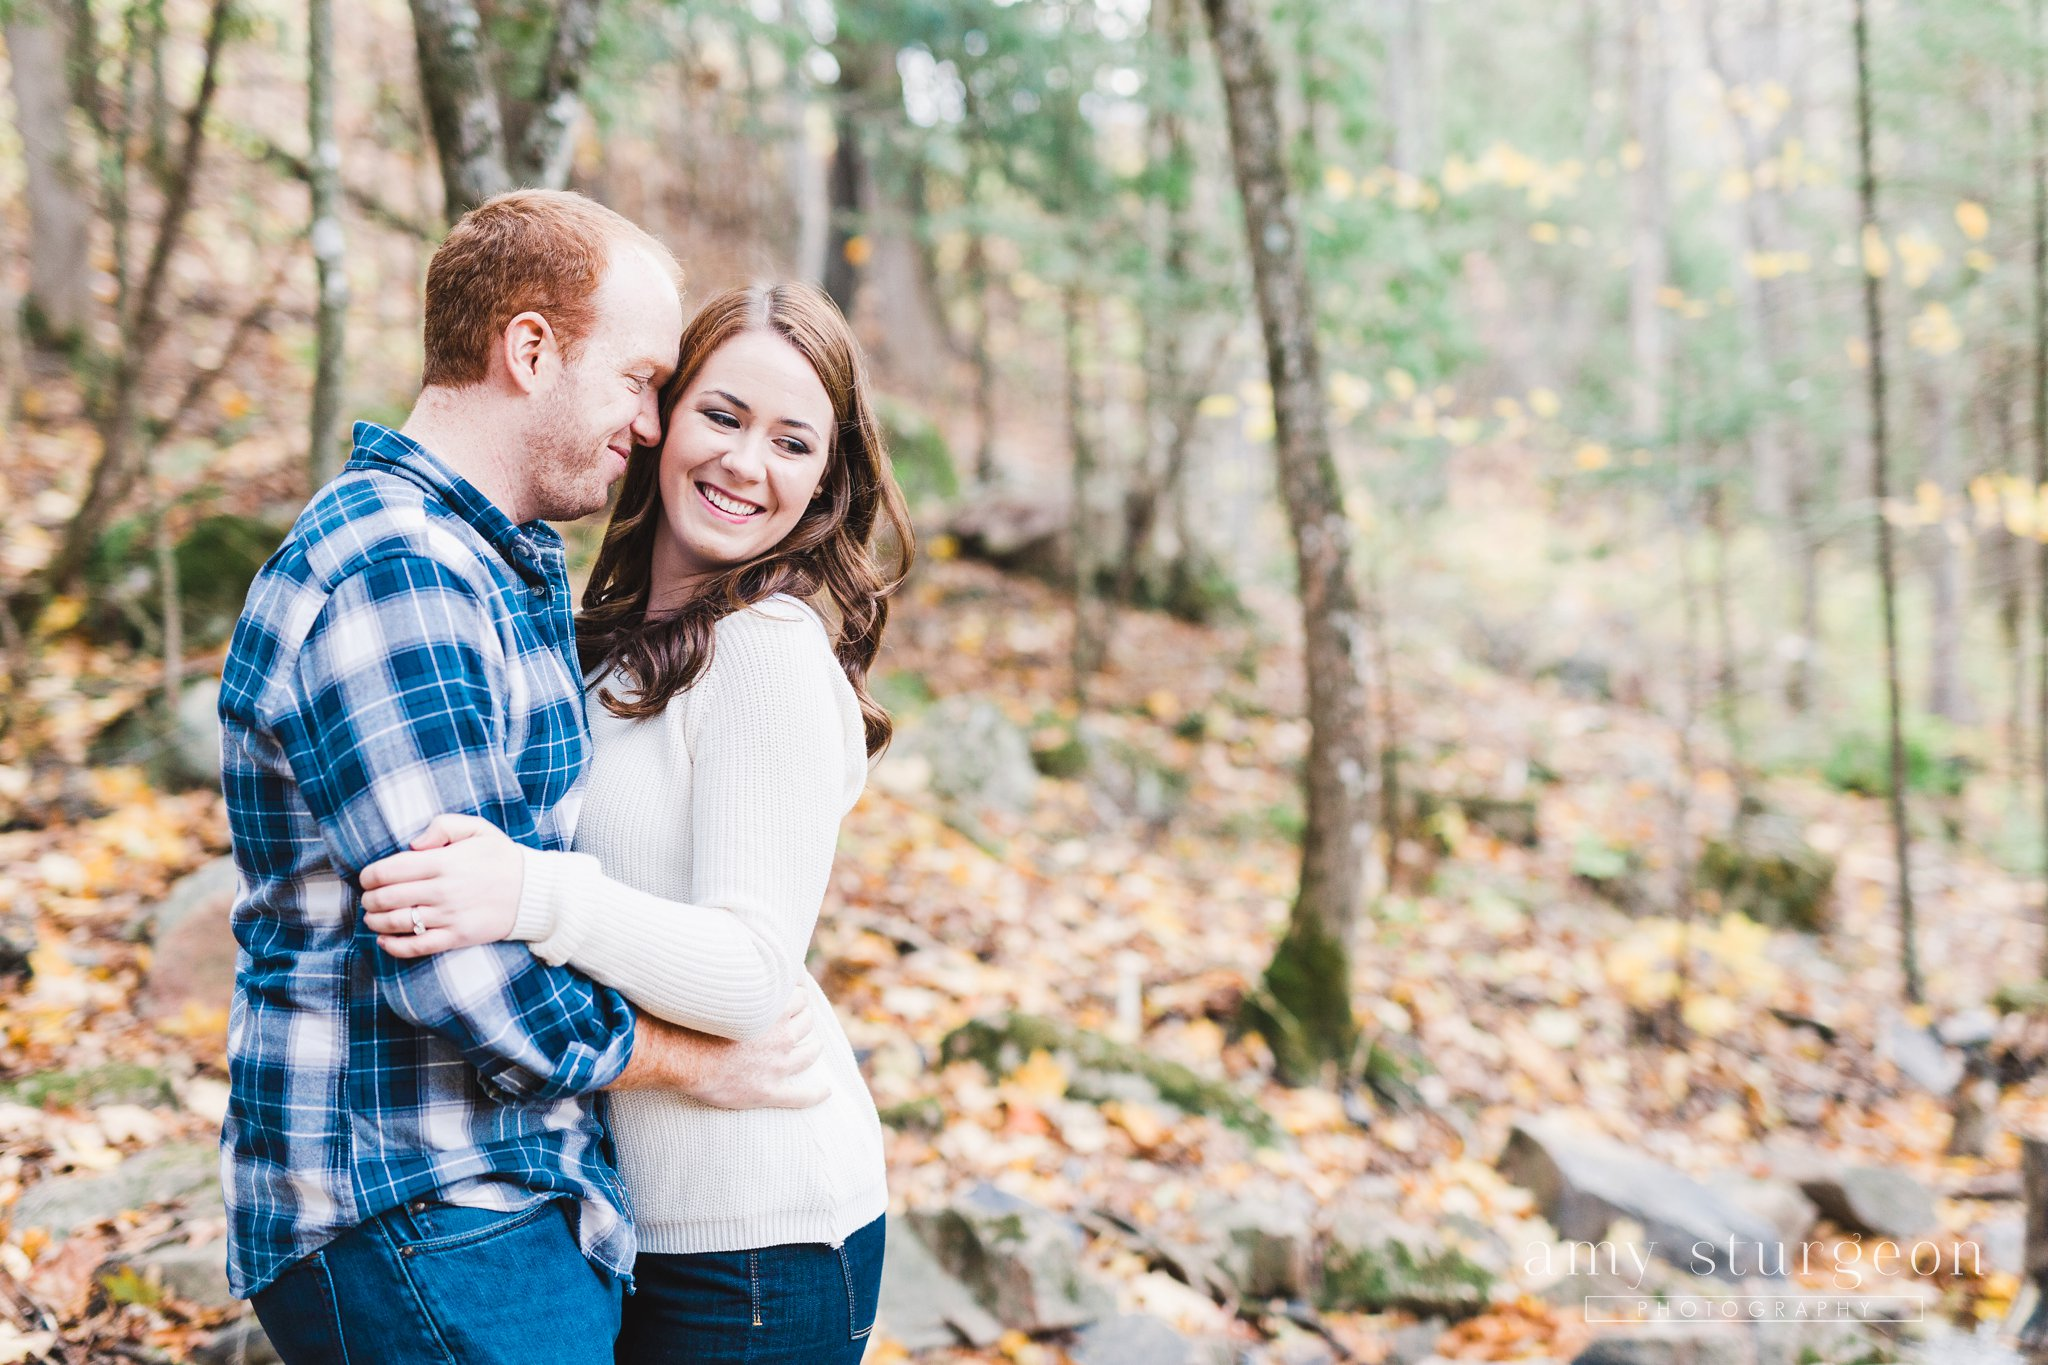 Cozy clothing for their Fall Wakefield Engagement Session by the covered bridge